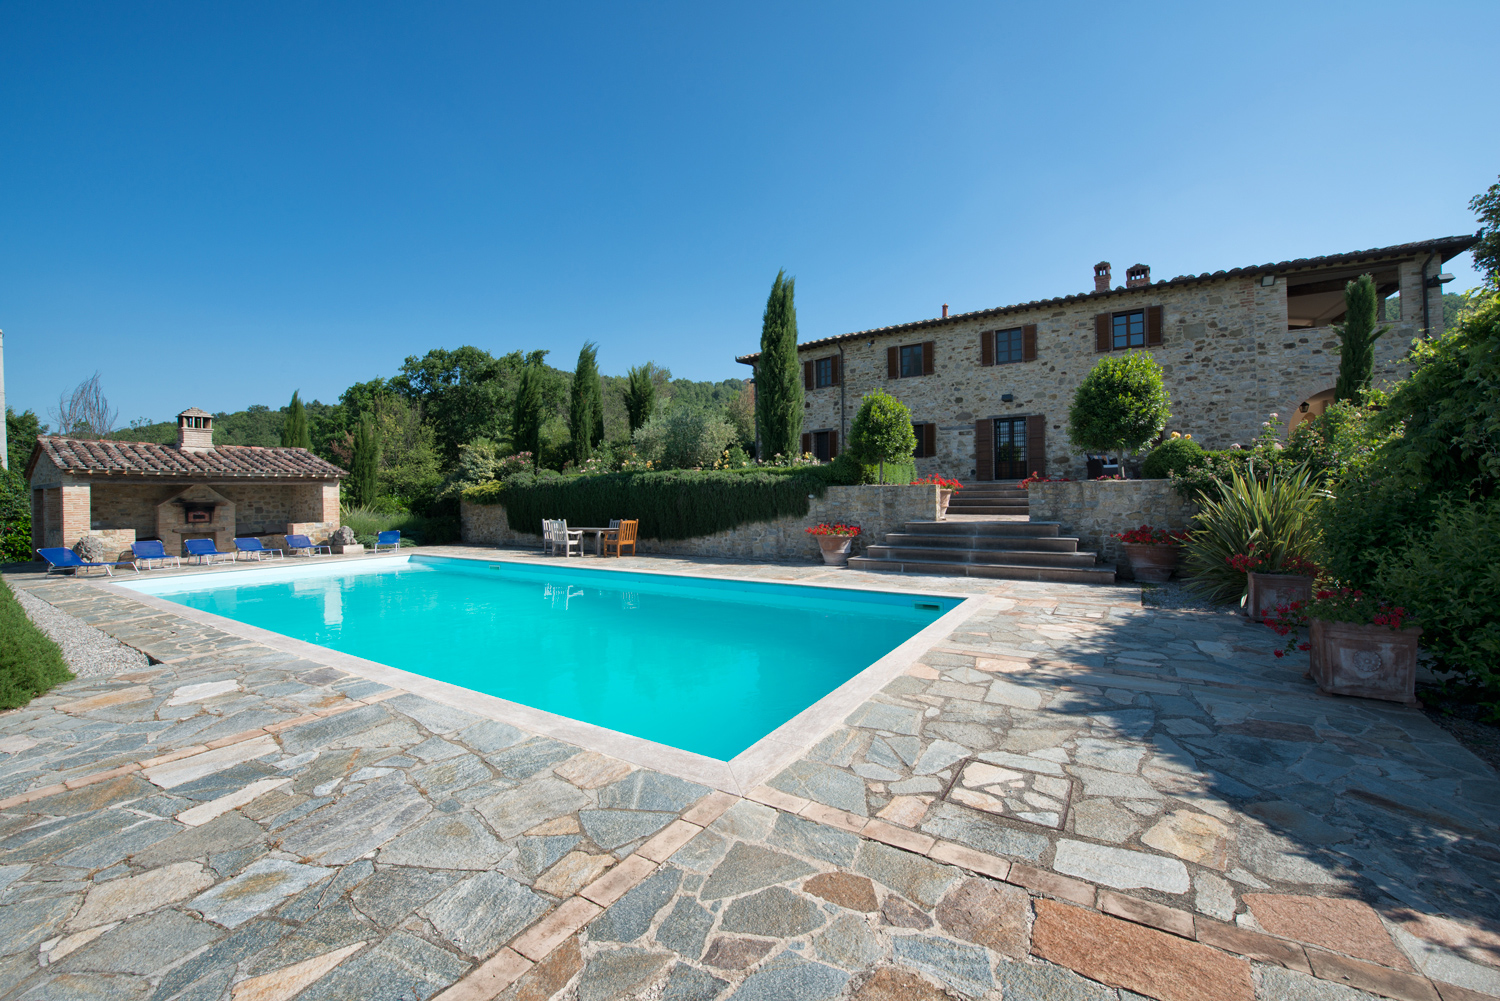 Farmhouse with swimming pool for sale in umbria near for Farmhouse with swimming pool